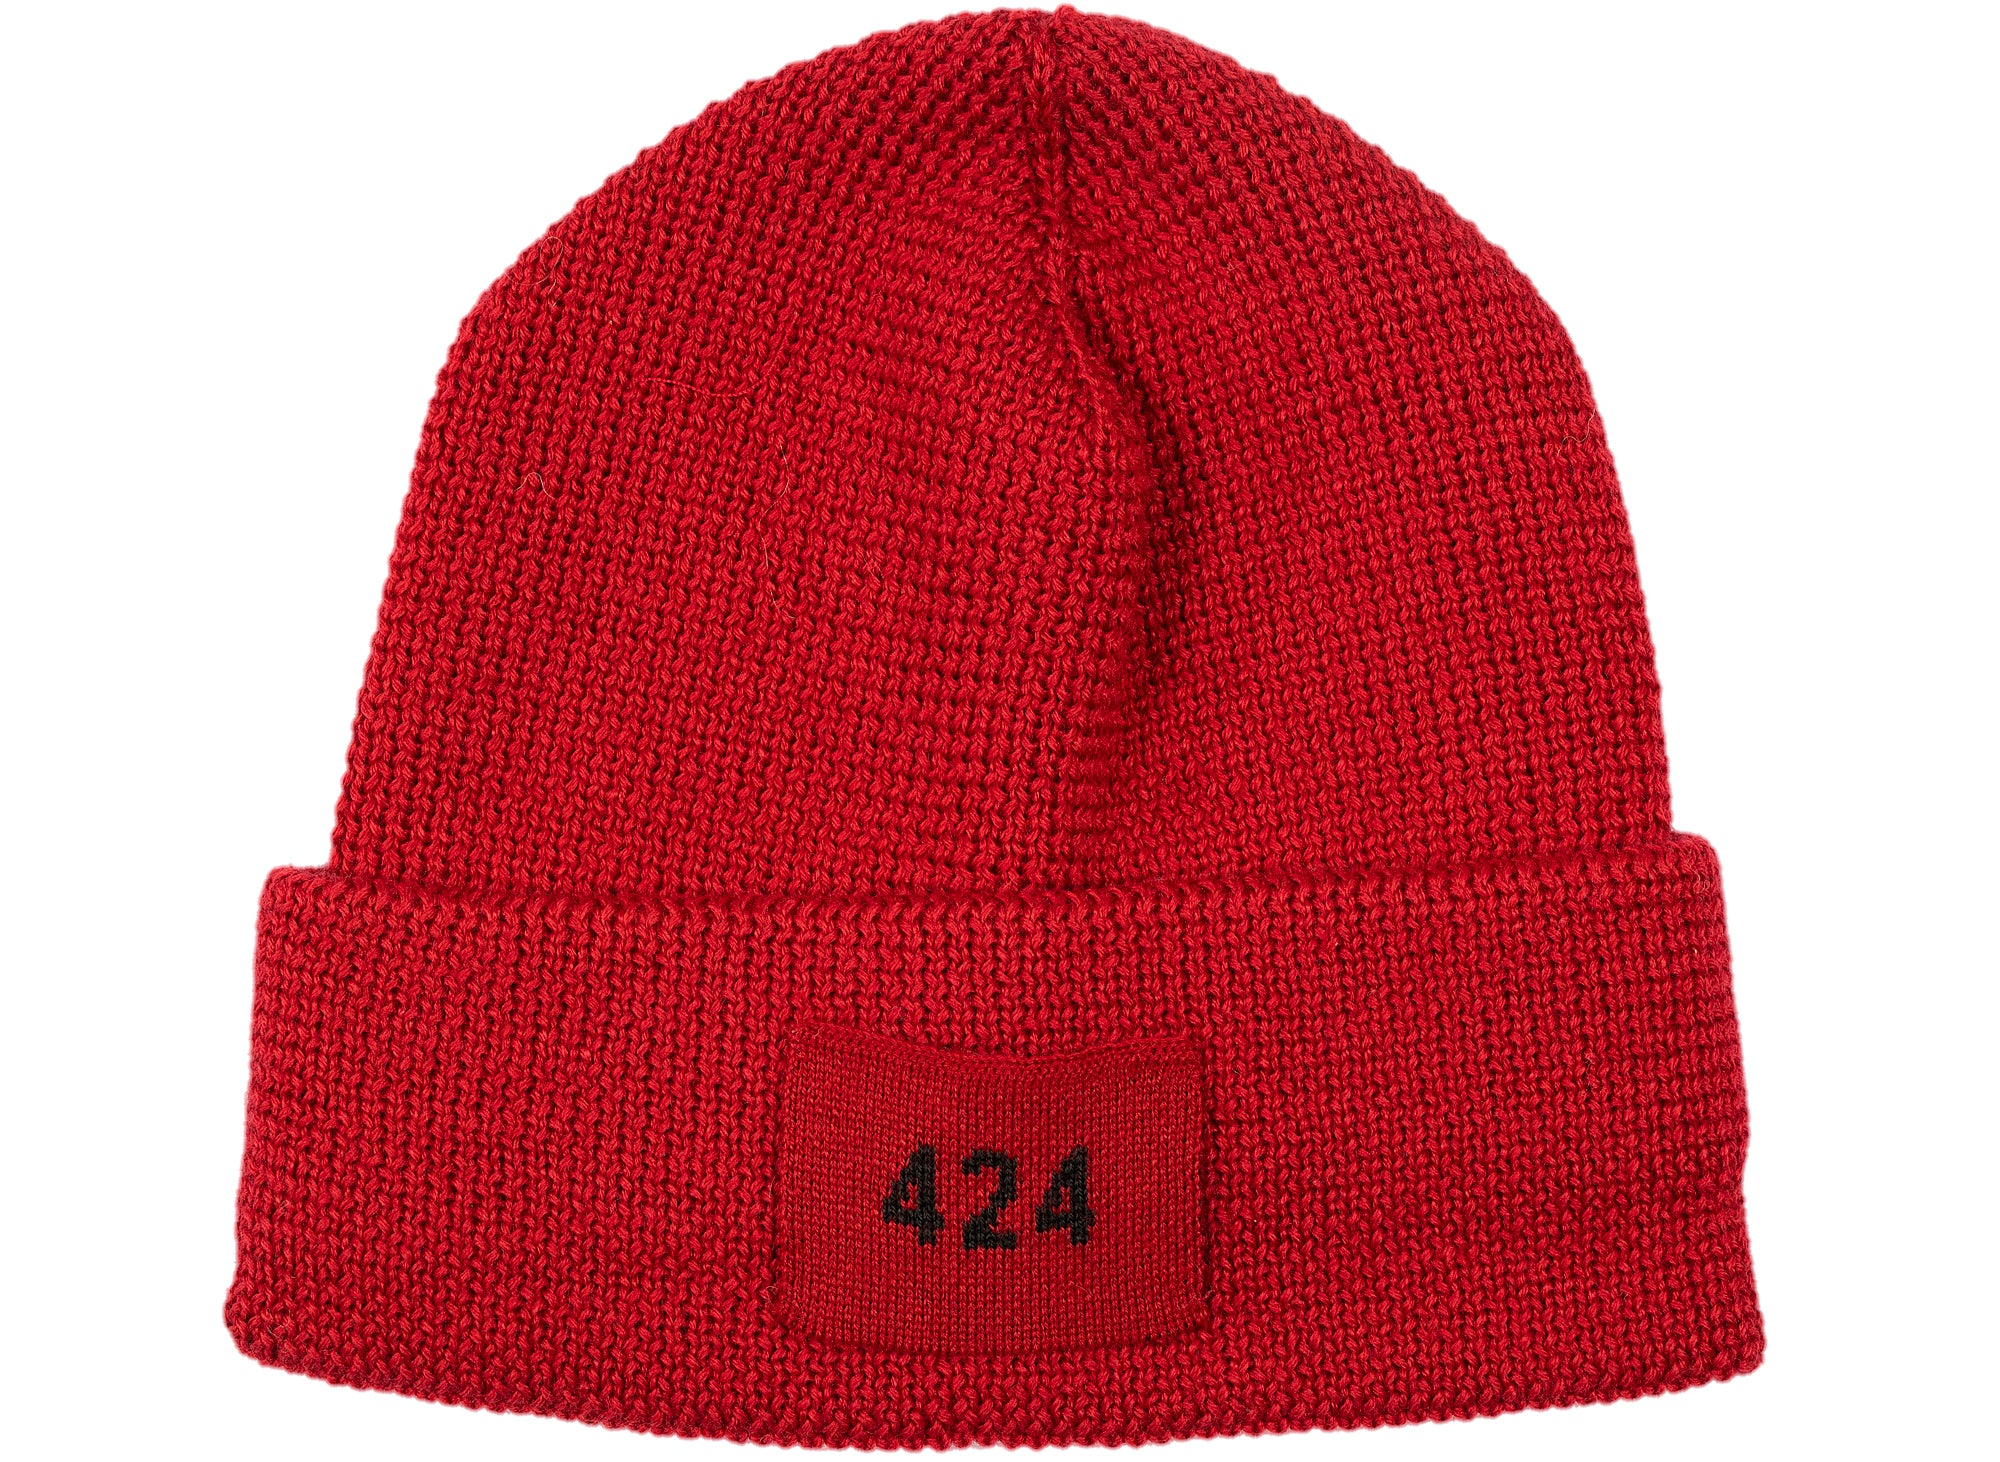 424 Ribbed Hat in Red